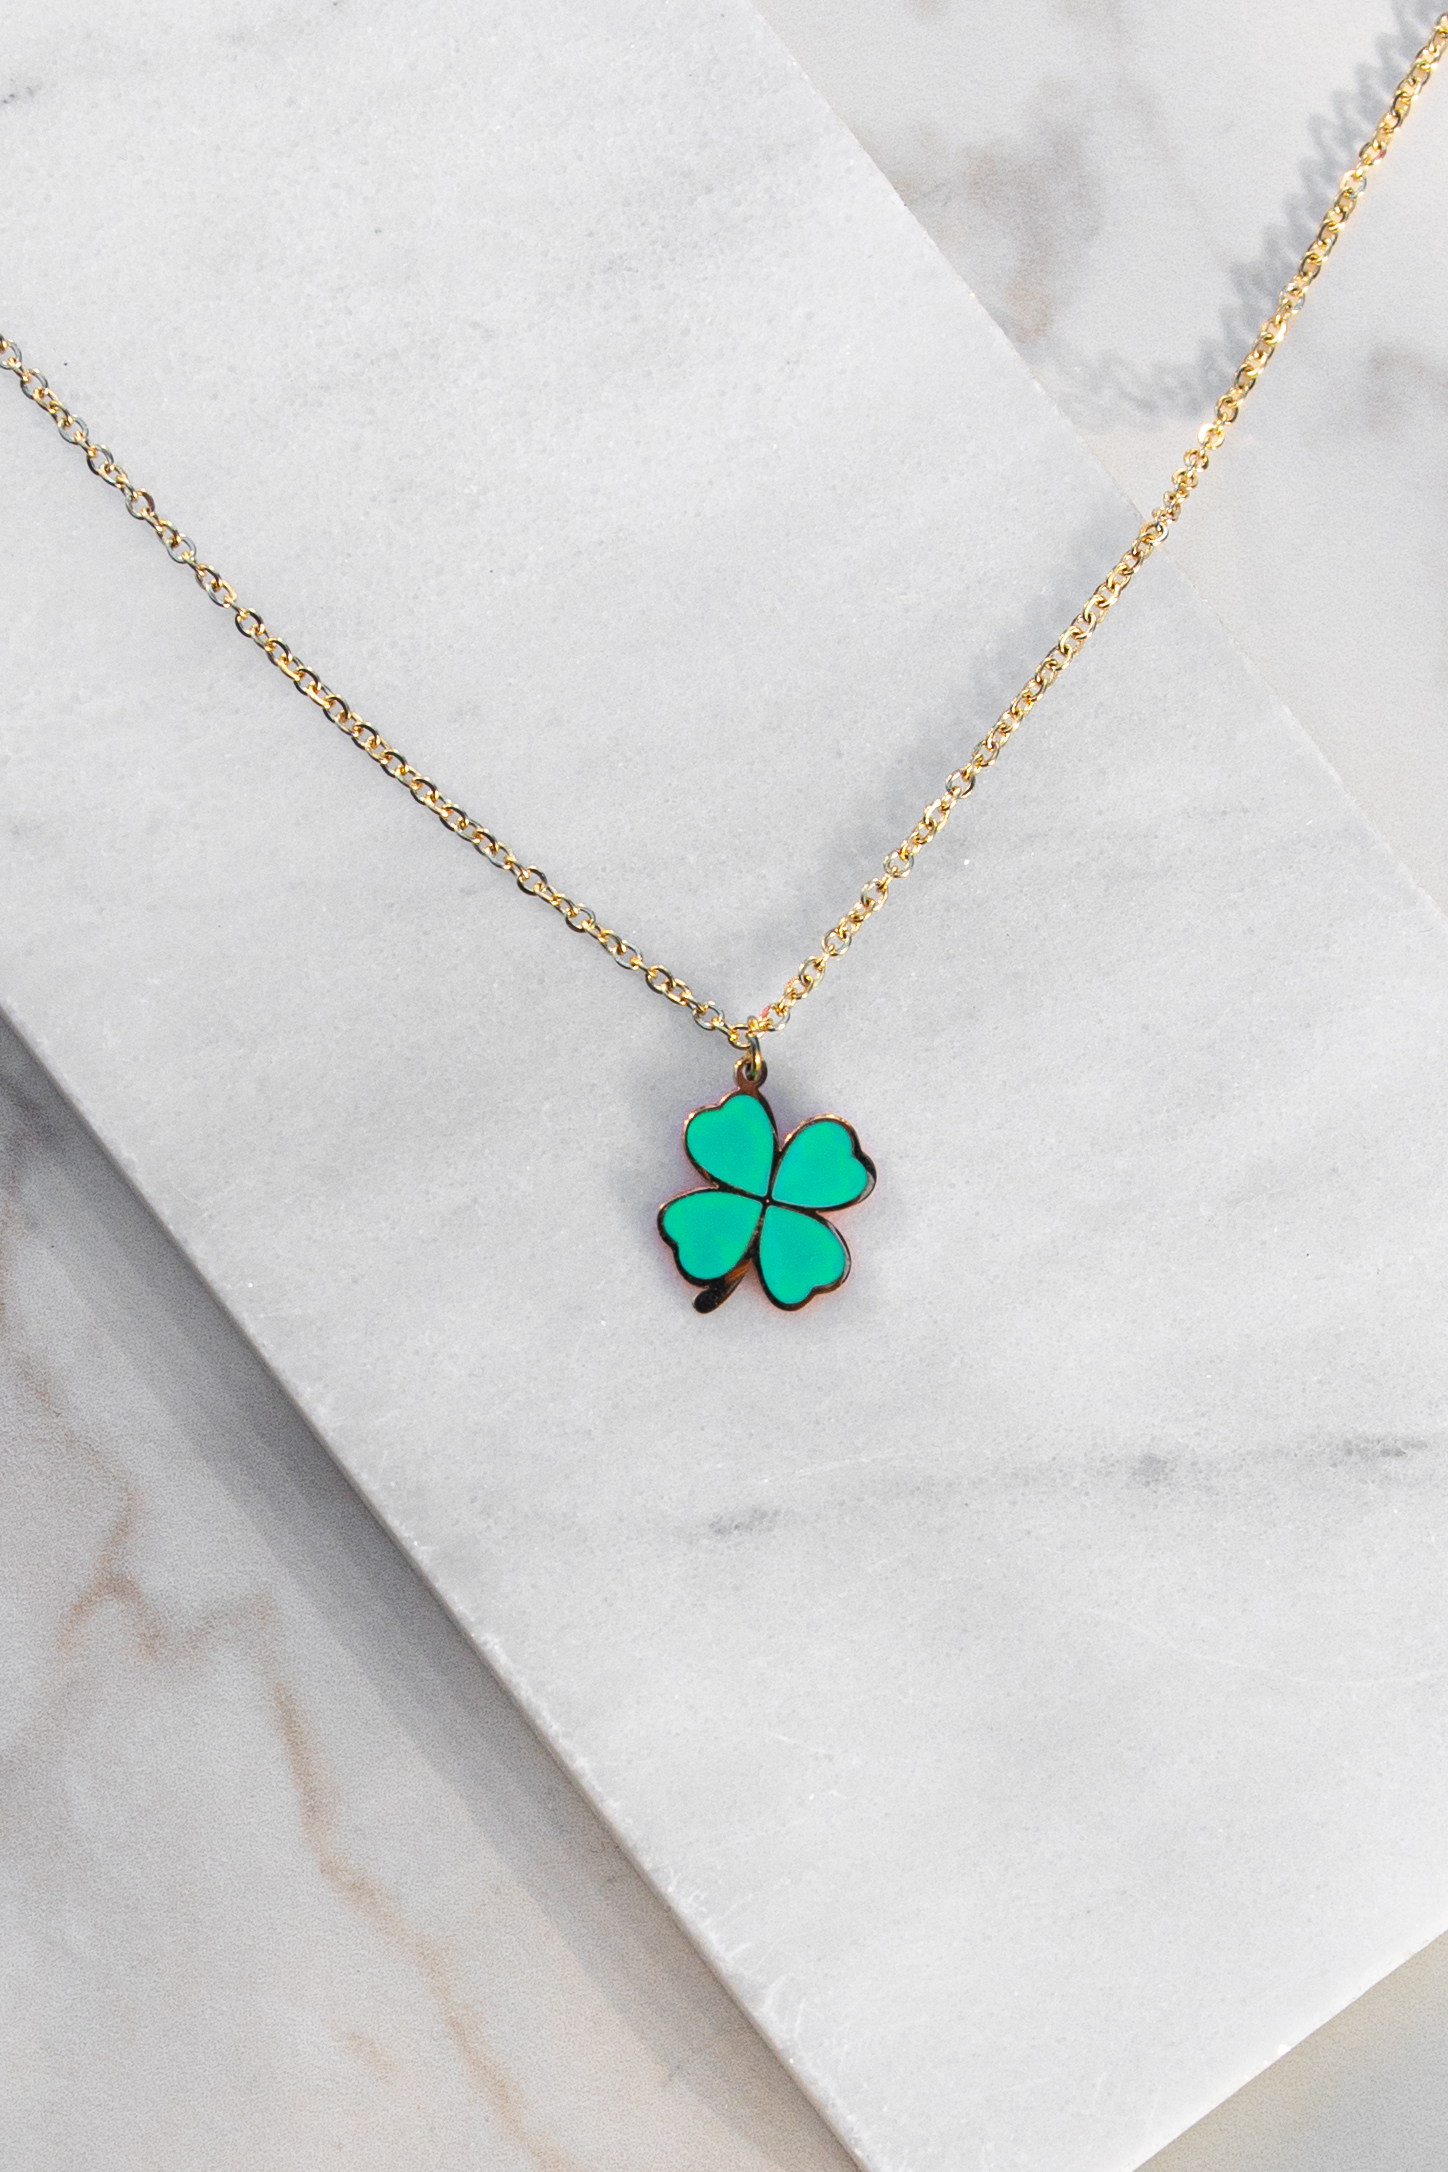 Gold Chain Necklace with Kelly Green Shamrock Pendant